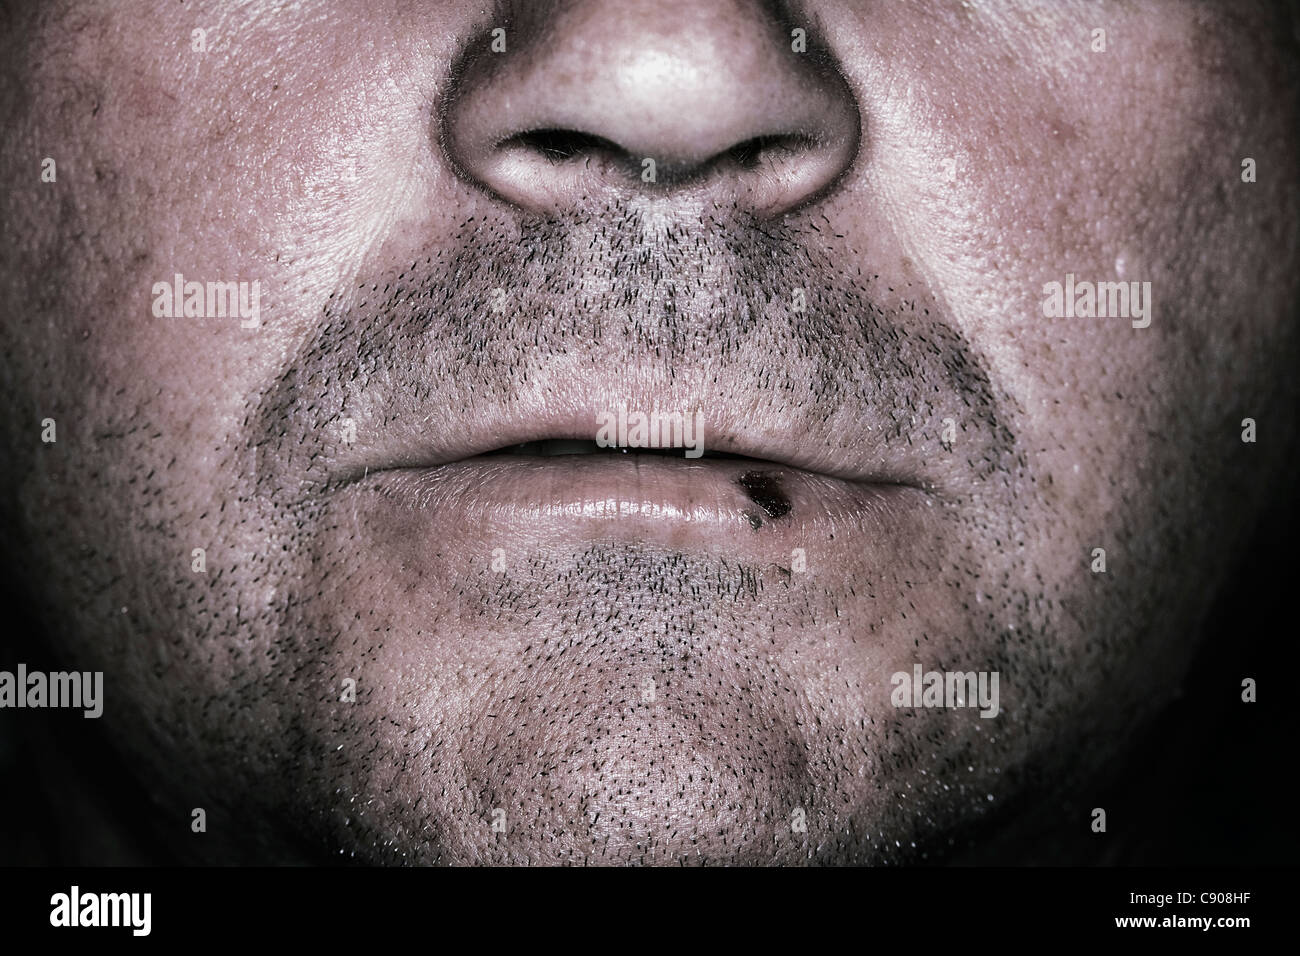 unshaved man with lip scar/scab - Stock Image